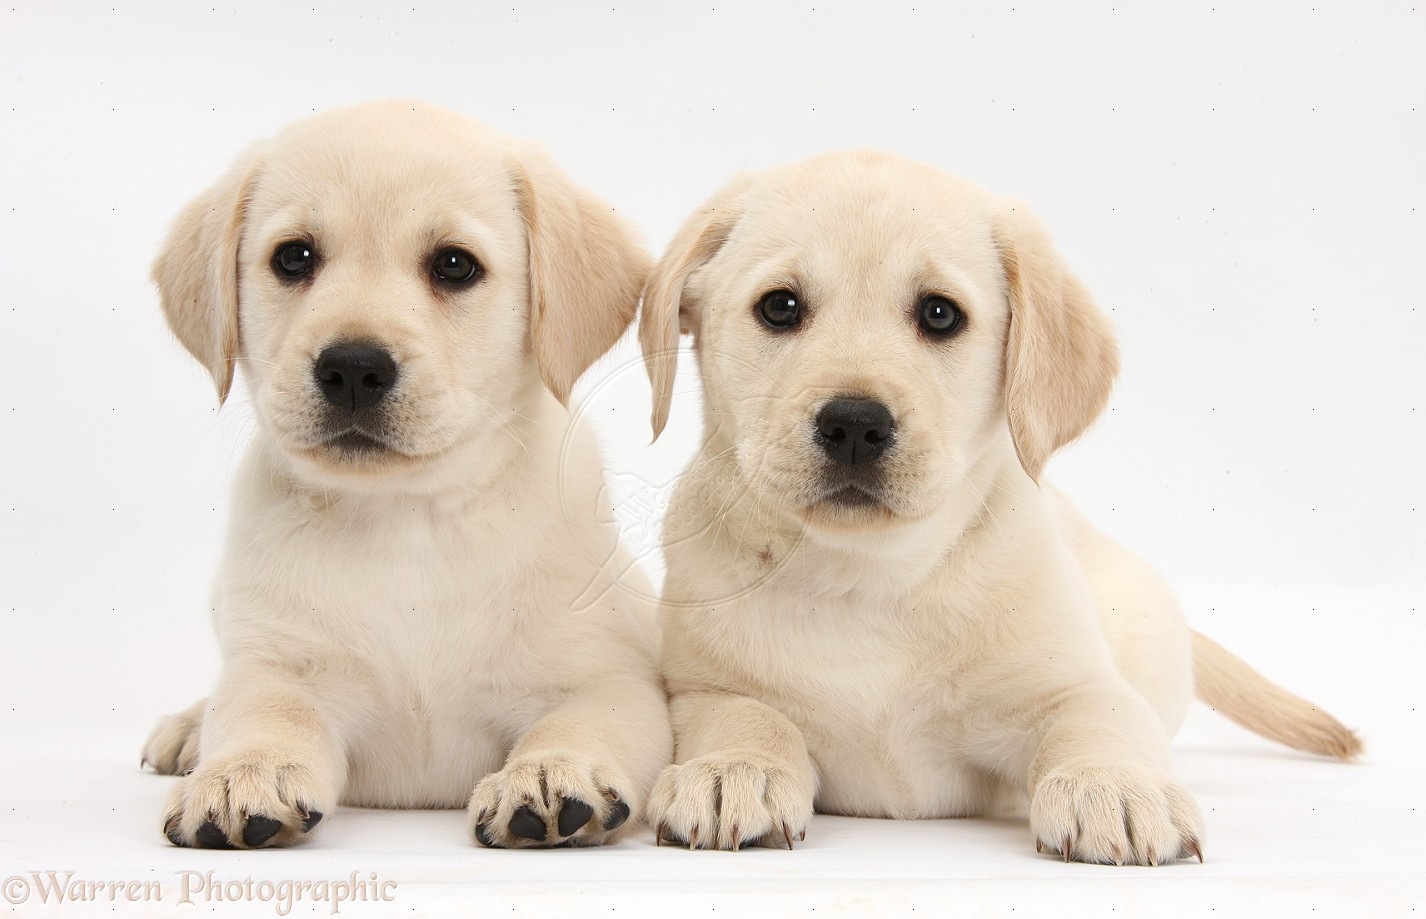 12 Animals Desktop Wallpapers 922004 Yellow Labrador Puppies Photos 1426x919